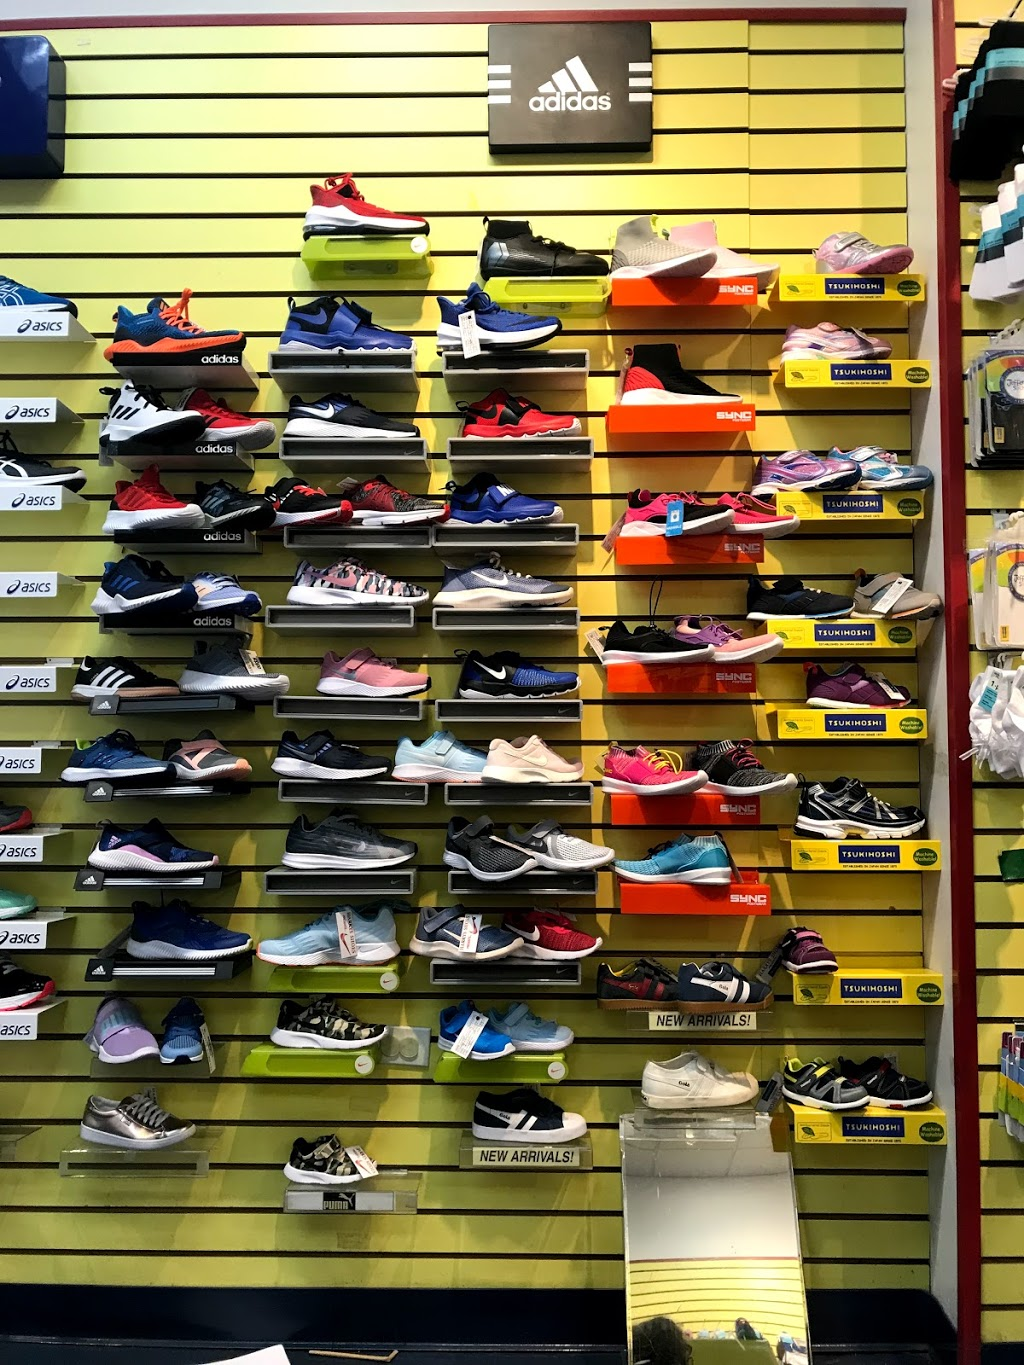 Harrys Shoes for Kids - shoe store  | Photo 6 of 10 | Address: 2315 Broadway, New York, NY 10024, USA | Phone: (855) 642-7797